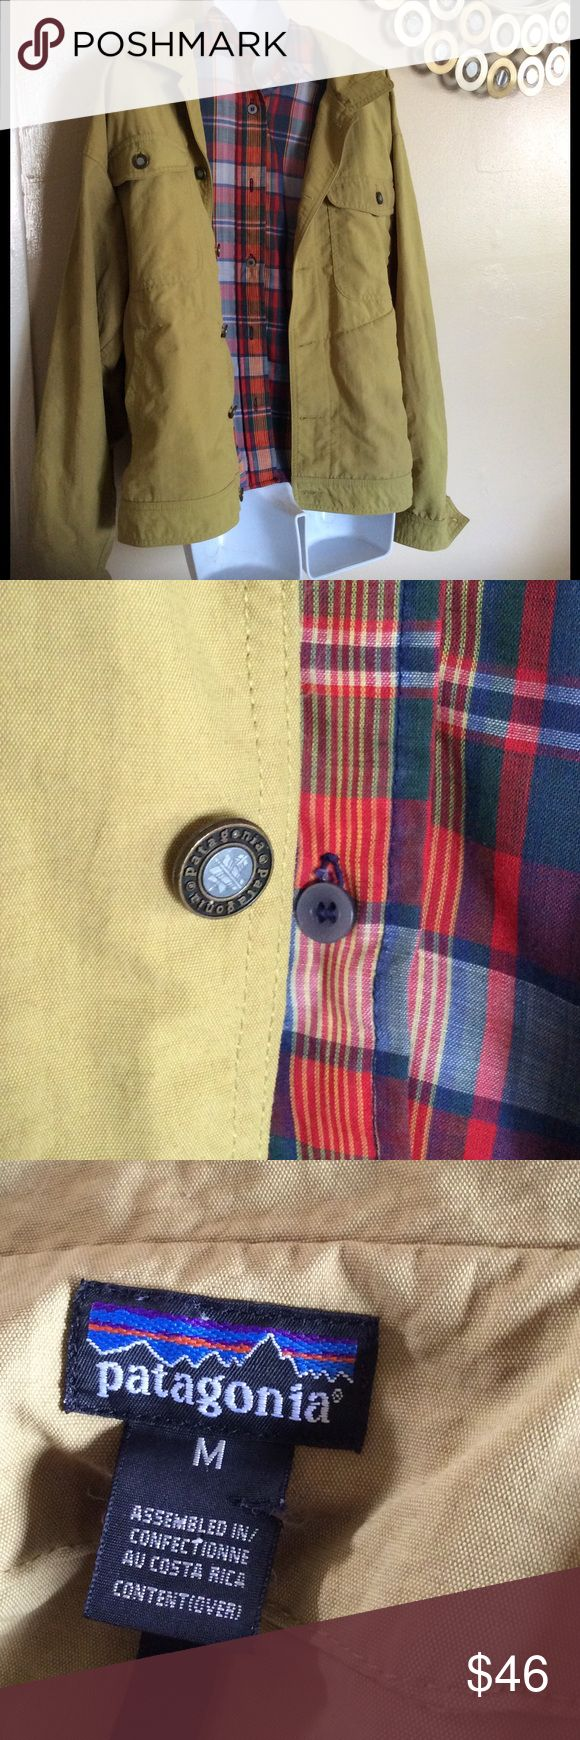 Size M Patagonia light weight button up jacket Mustard color. 1st two pics true to color. GUC. Button up collared. Utility pockets. Patagonia Jackets & Coats